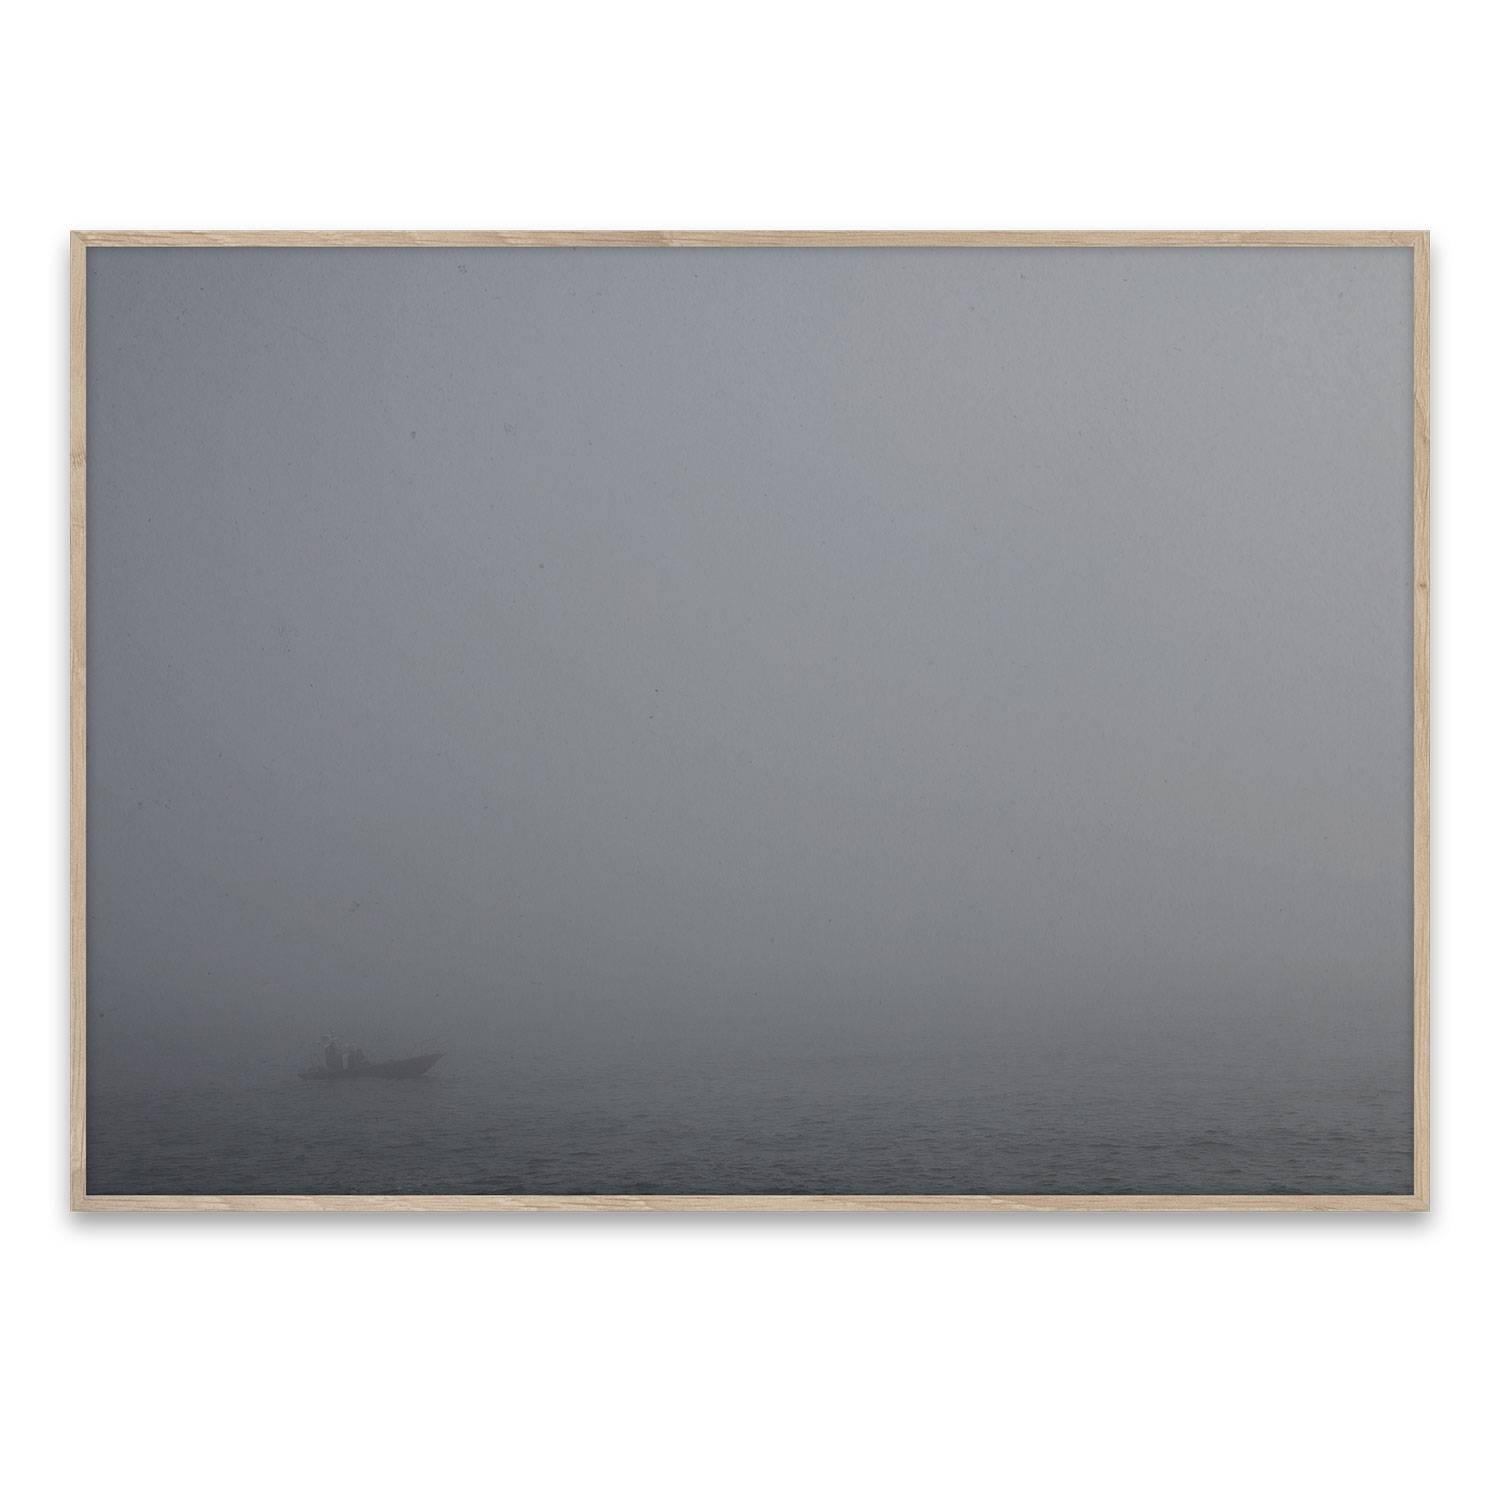 Paper Collective Mist Poster 50x70